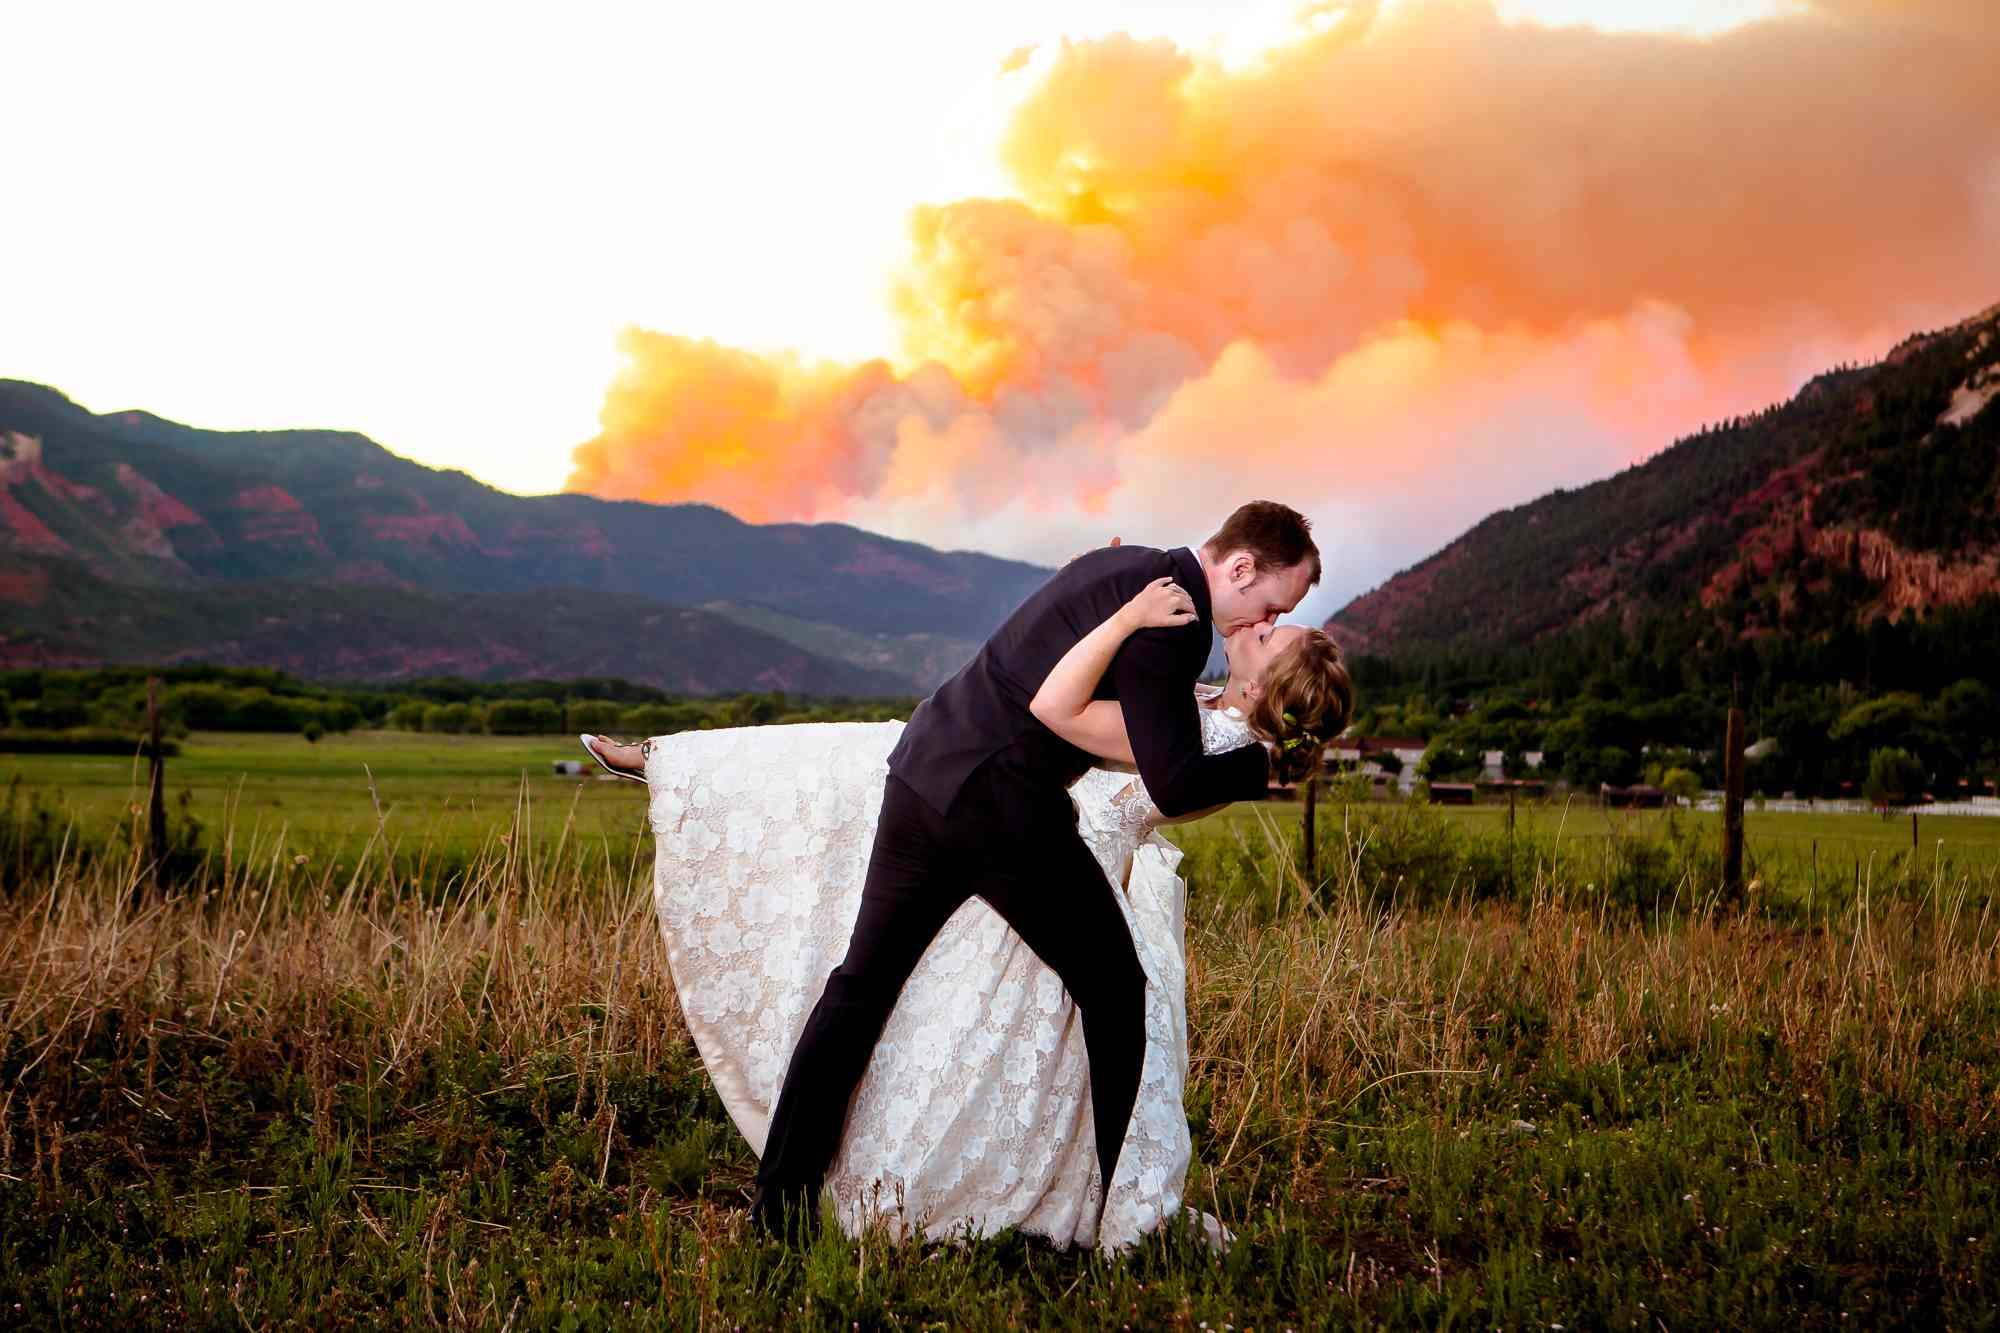 All The Viral Wedding Photos The Internet Fell In Love With This Year